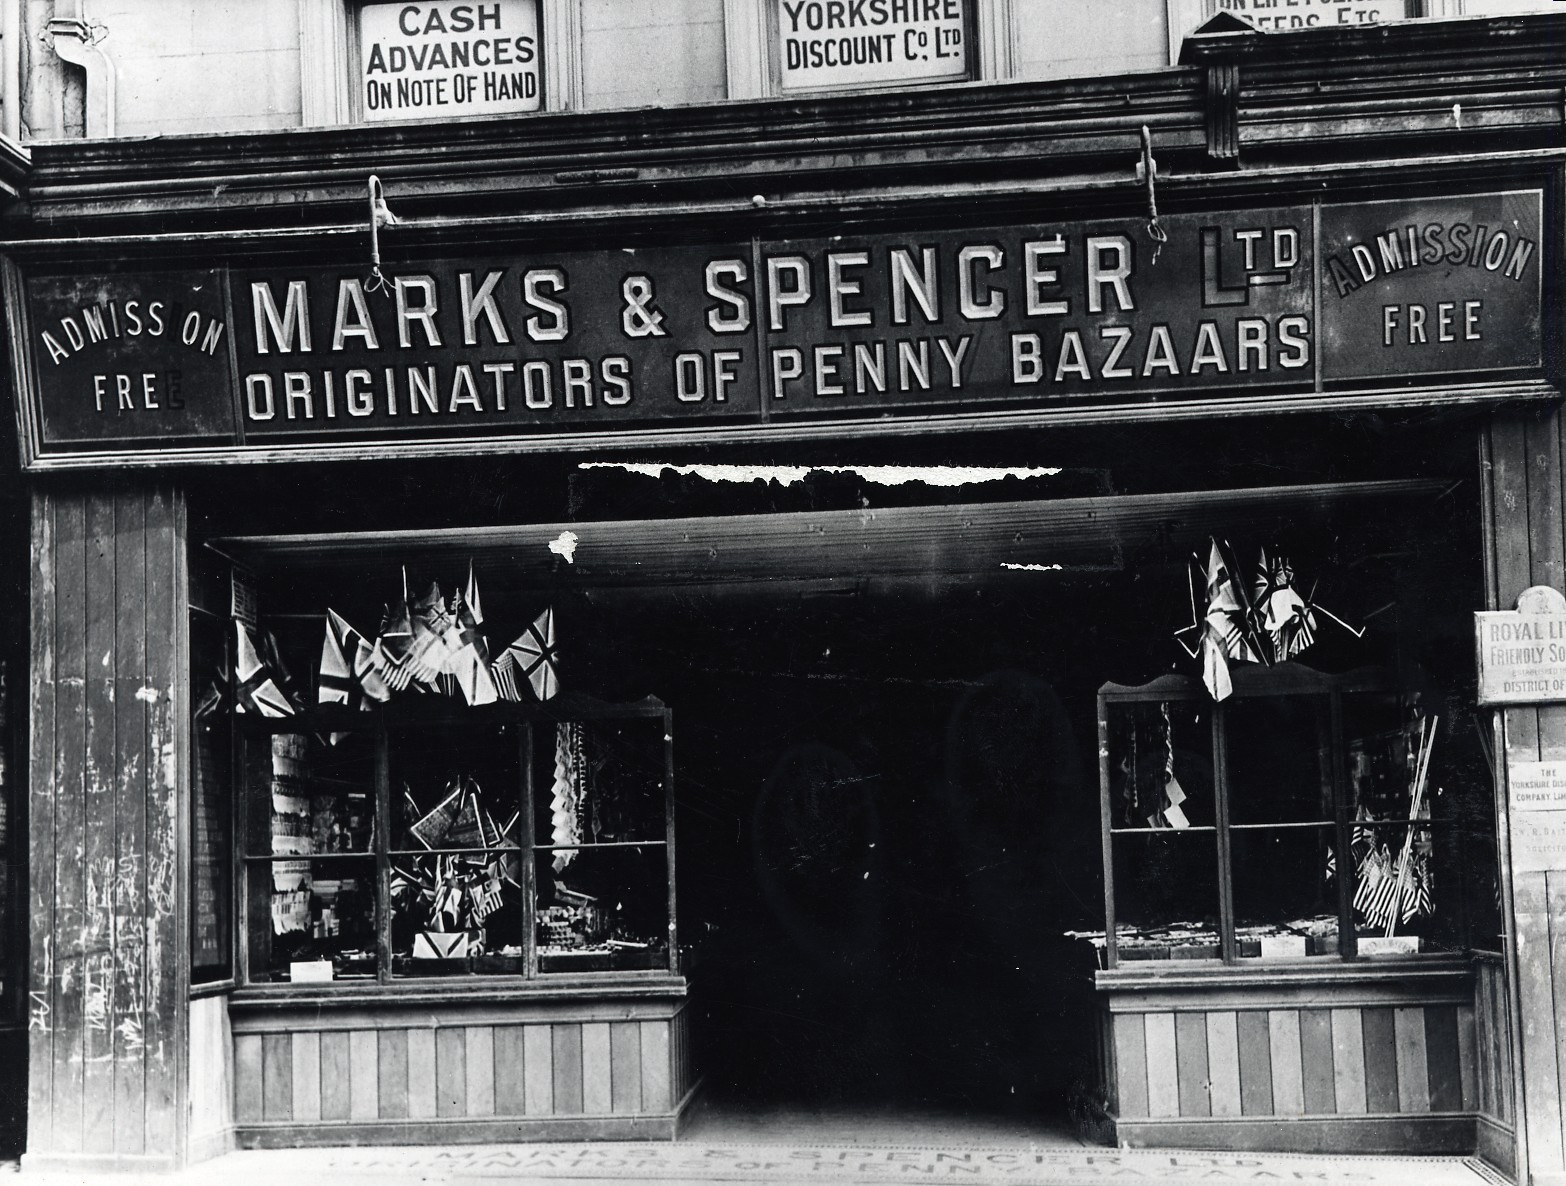 FIRST SHOP: Marks & Spencer in Prospect Place, Darlington, which opened in 1911. The penny bazaar looks in poor condition, so perhaps this picture was taken after M&S had vacated the premises in 1922